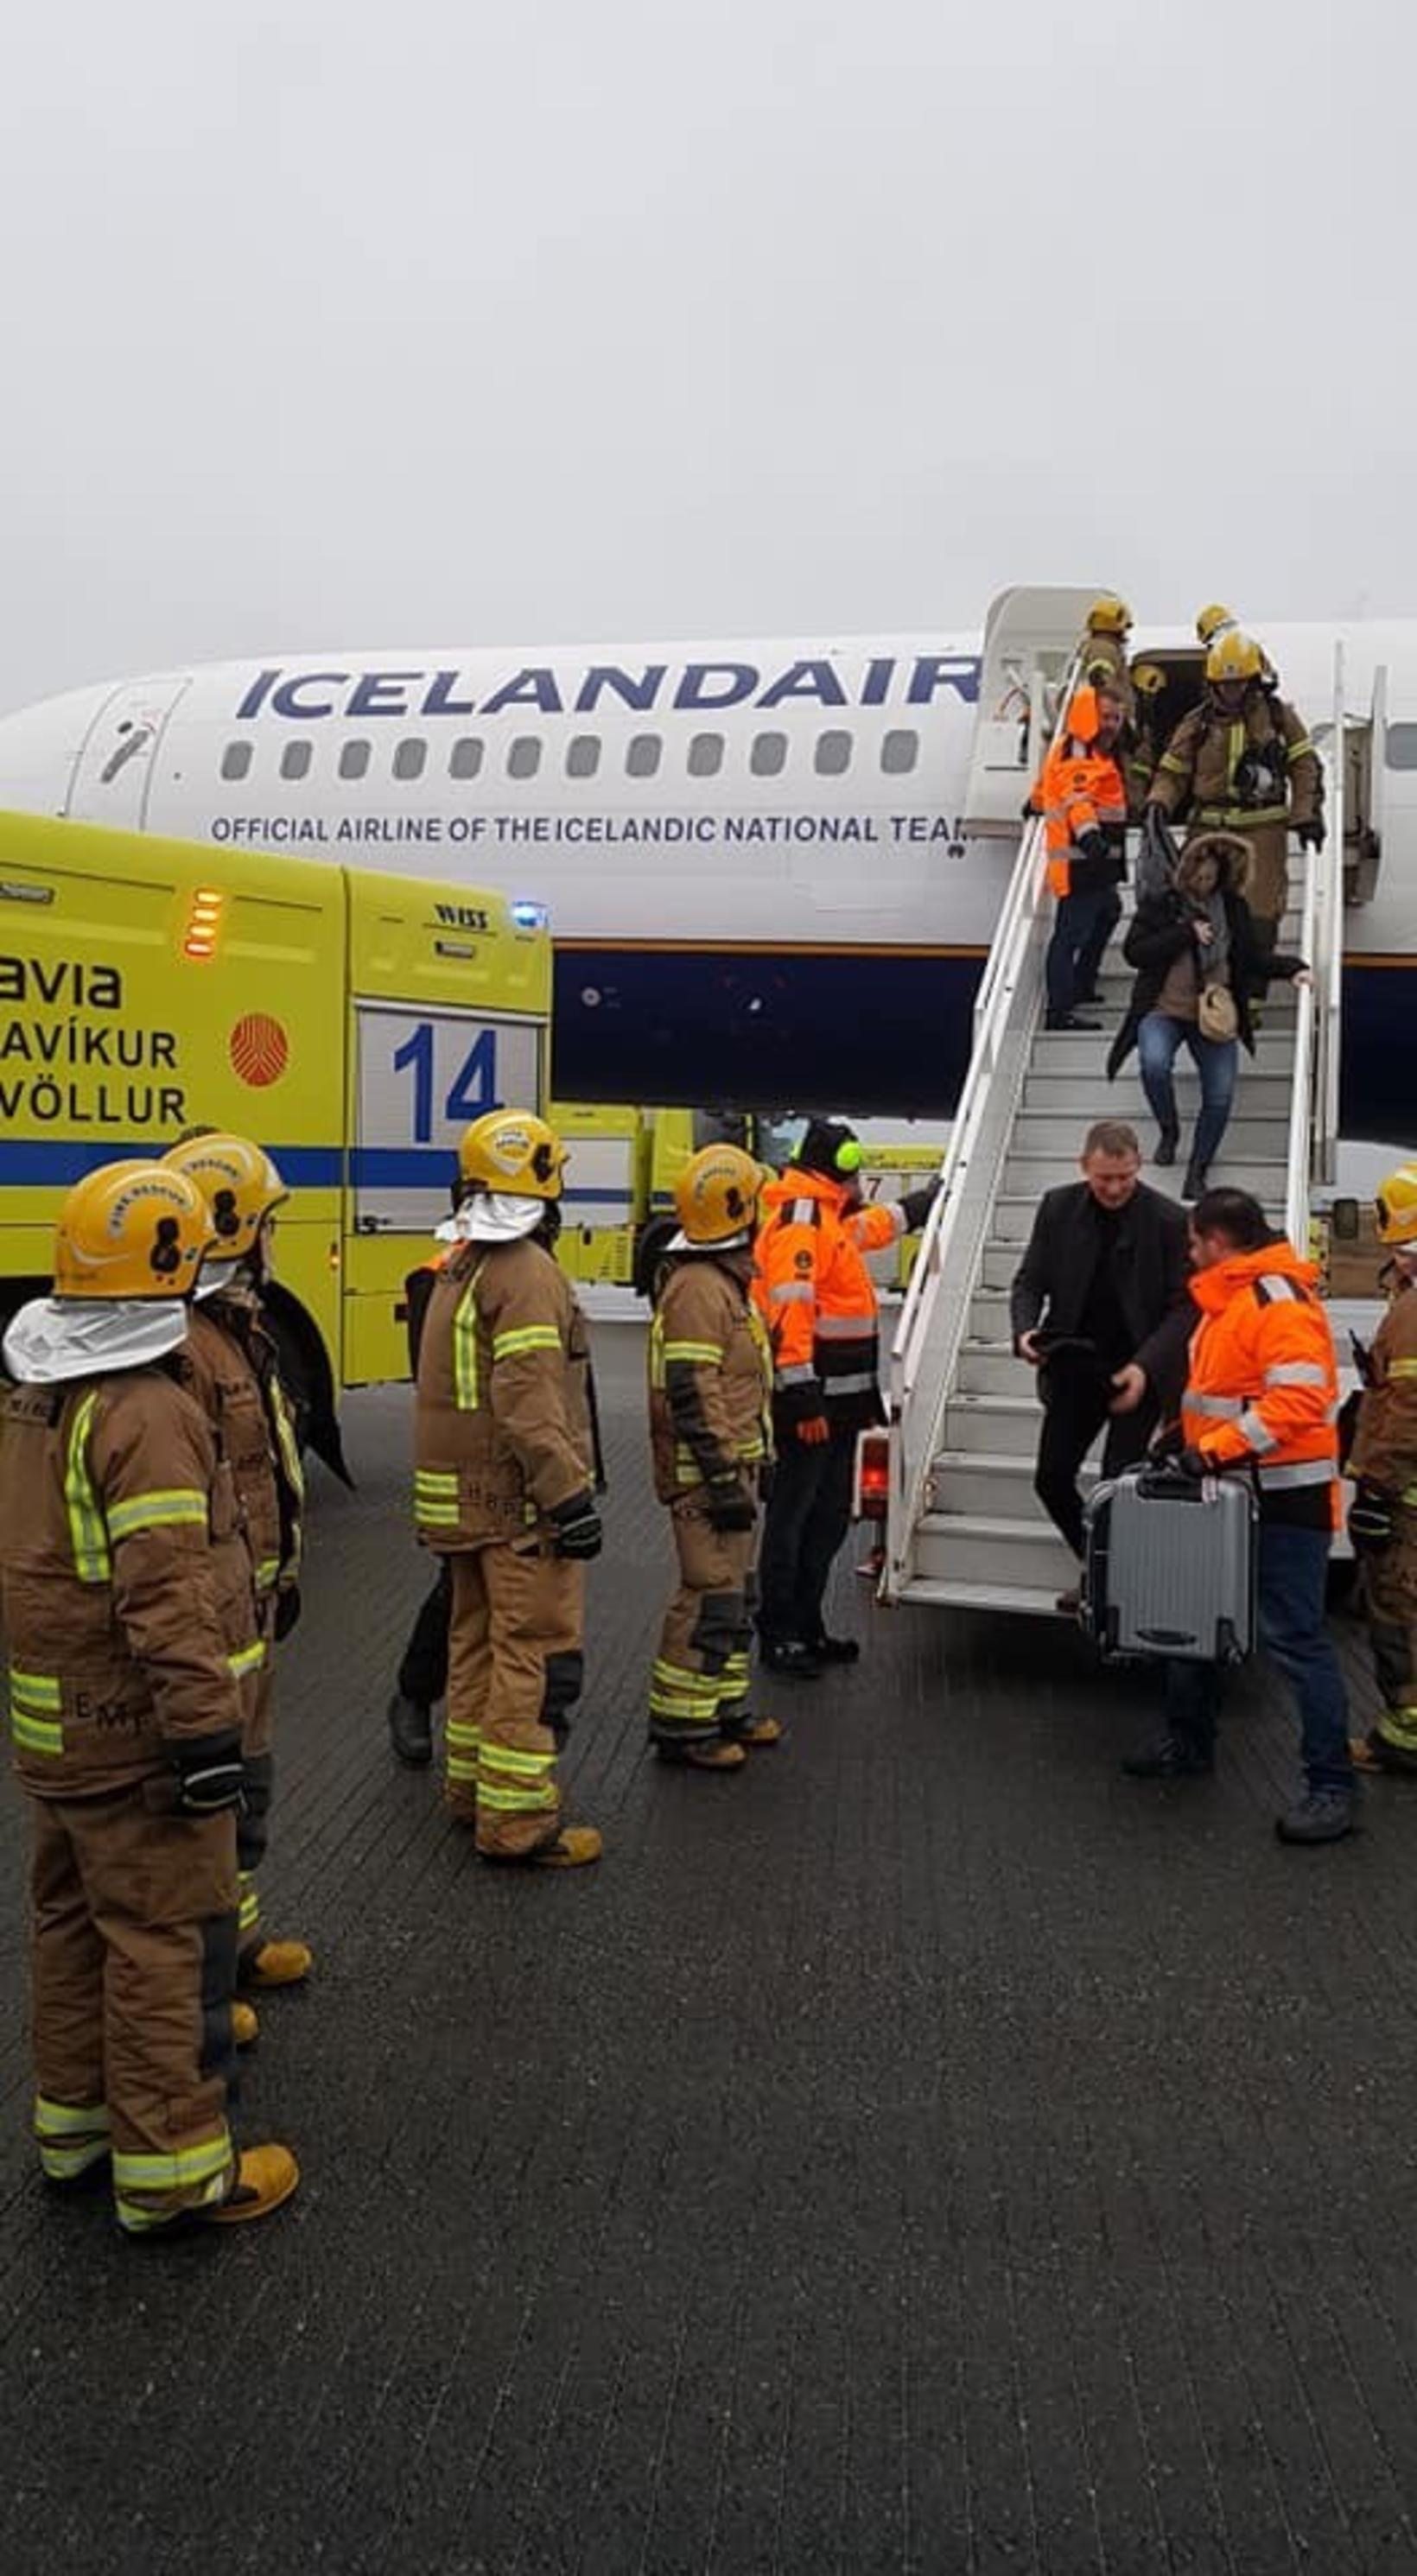 First responders assist passengers in disembarking.